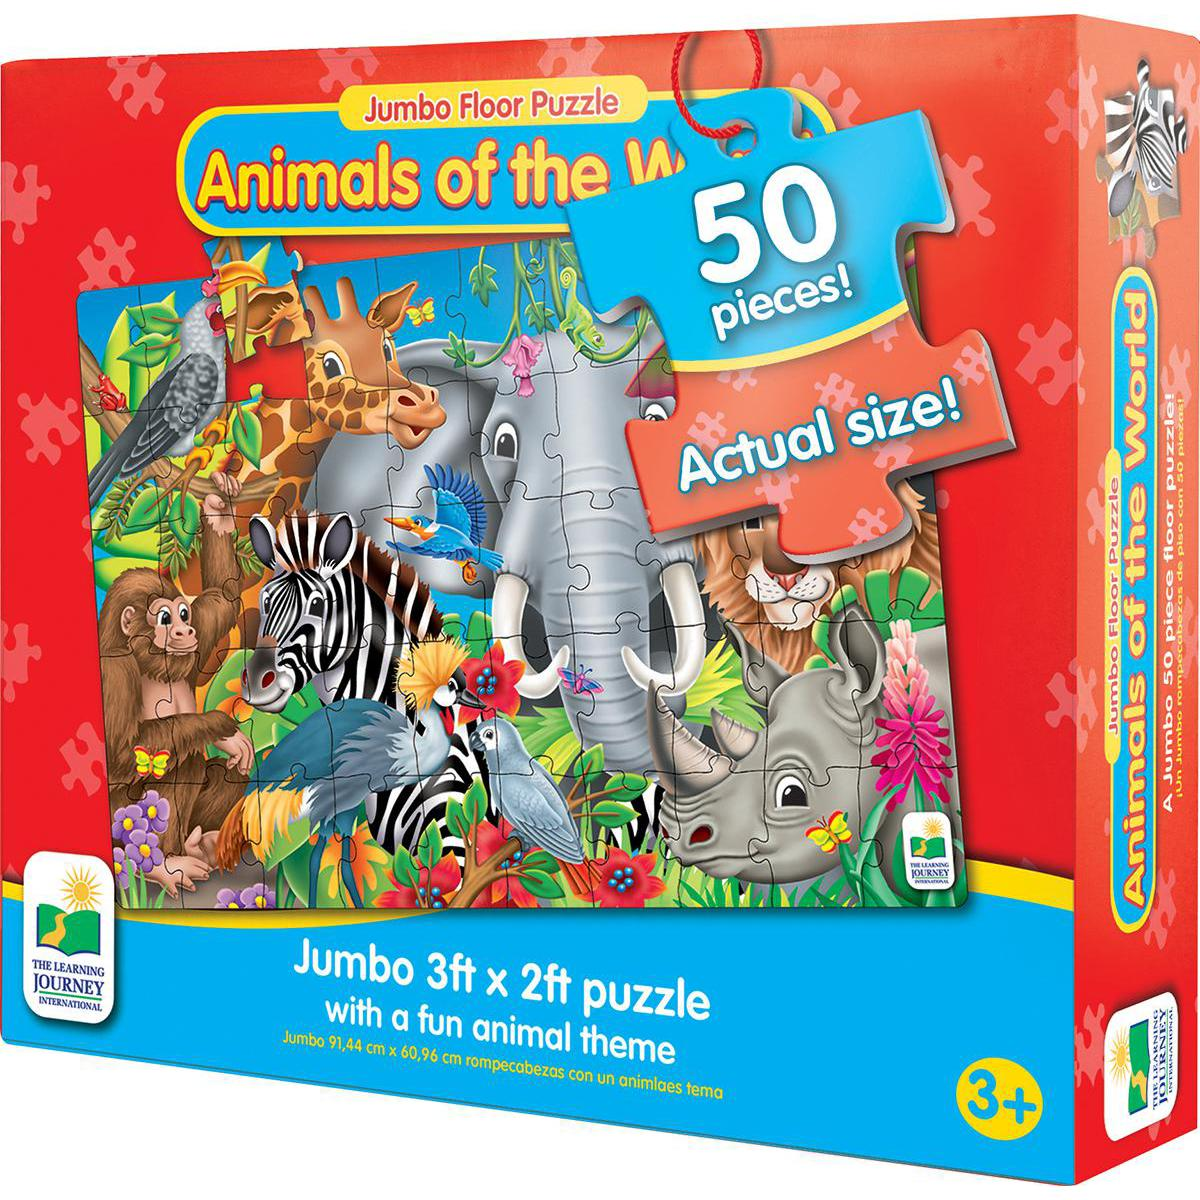 Jumbo Floor Puzzle Animals of the World